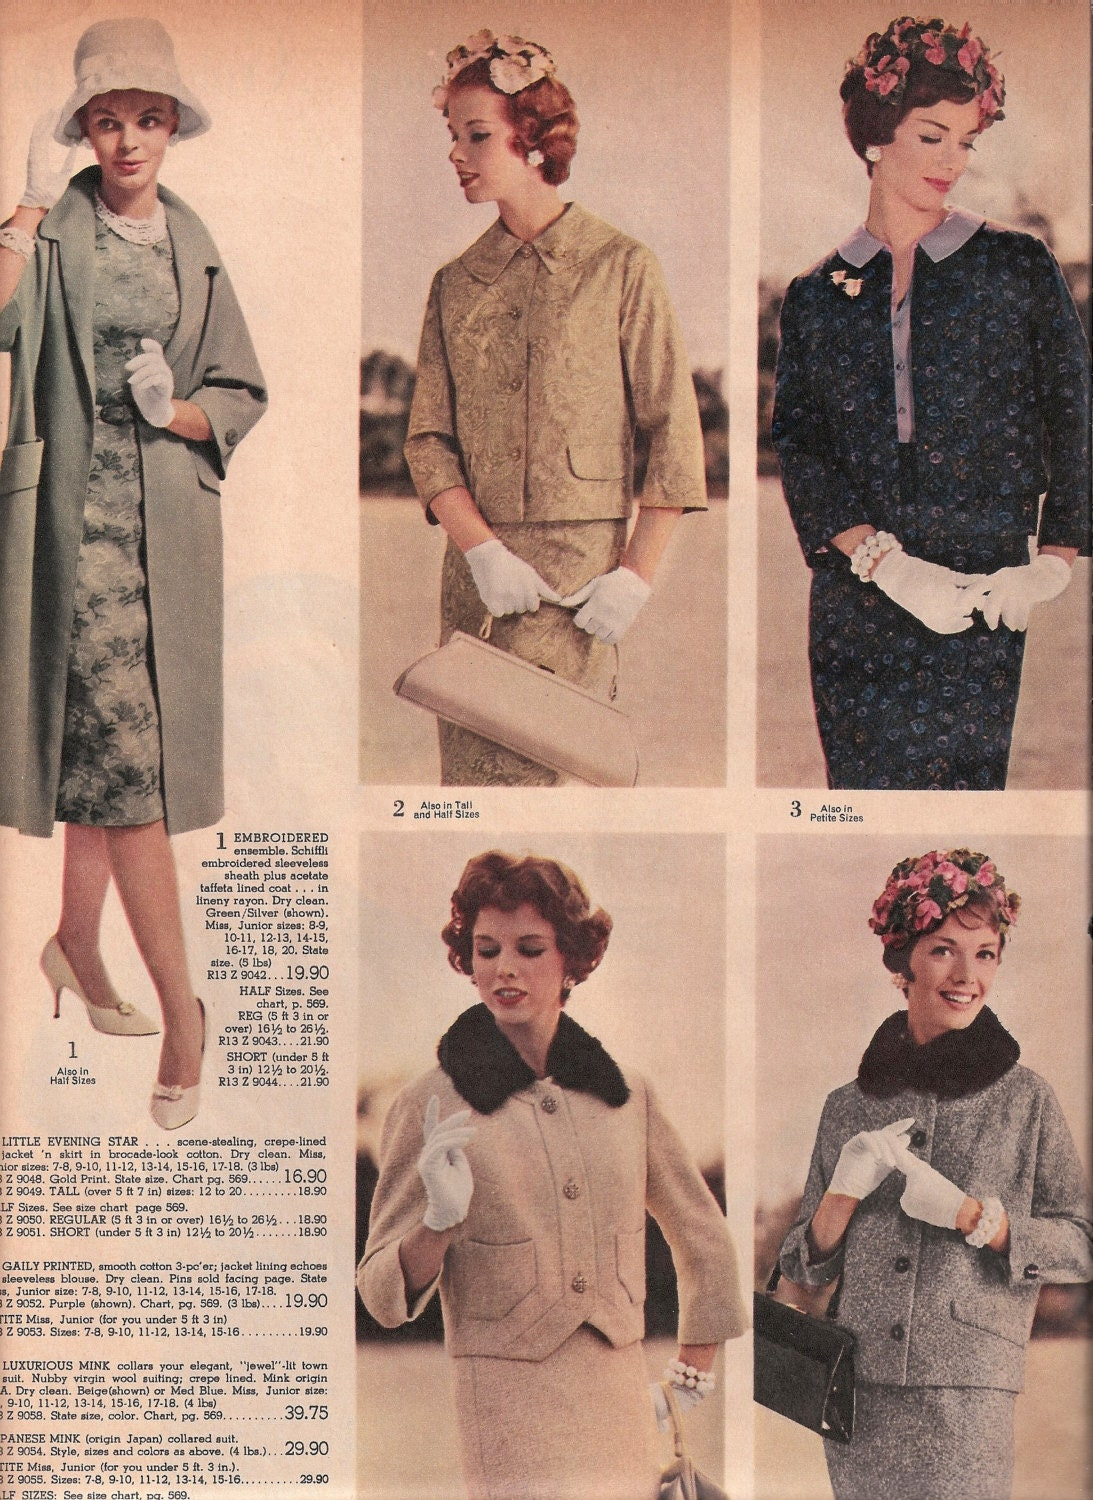 vintage coats fashion catalog pages from 1961 spiegel catalog